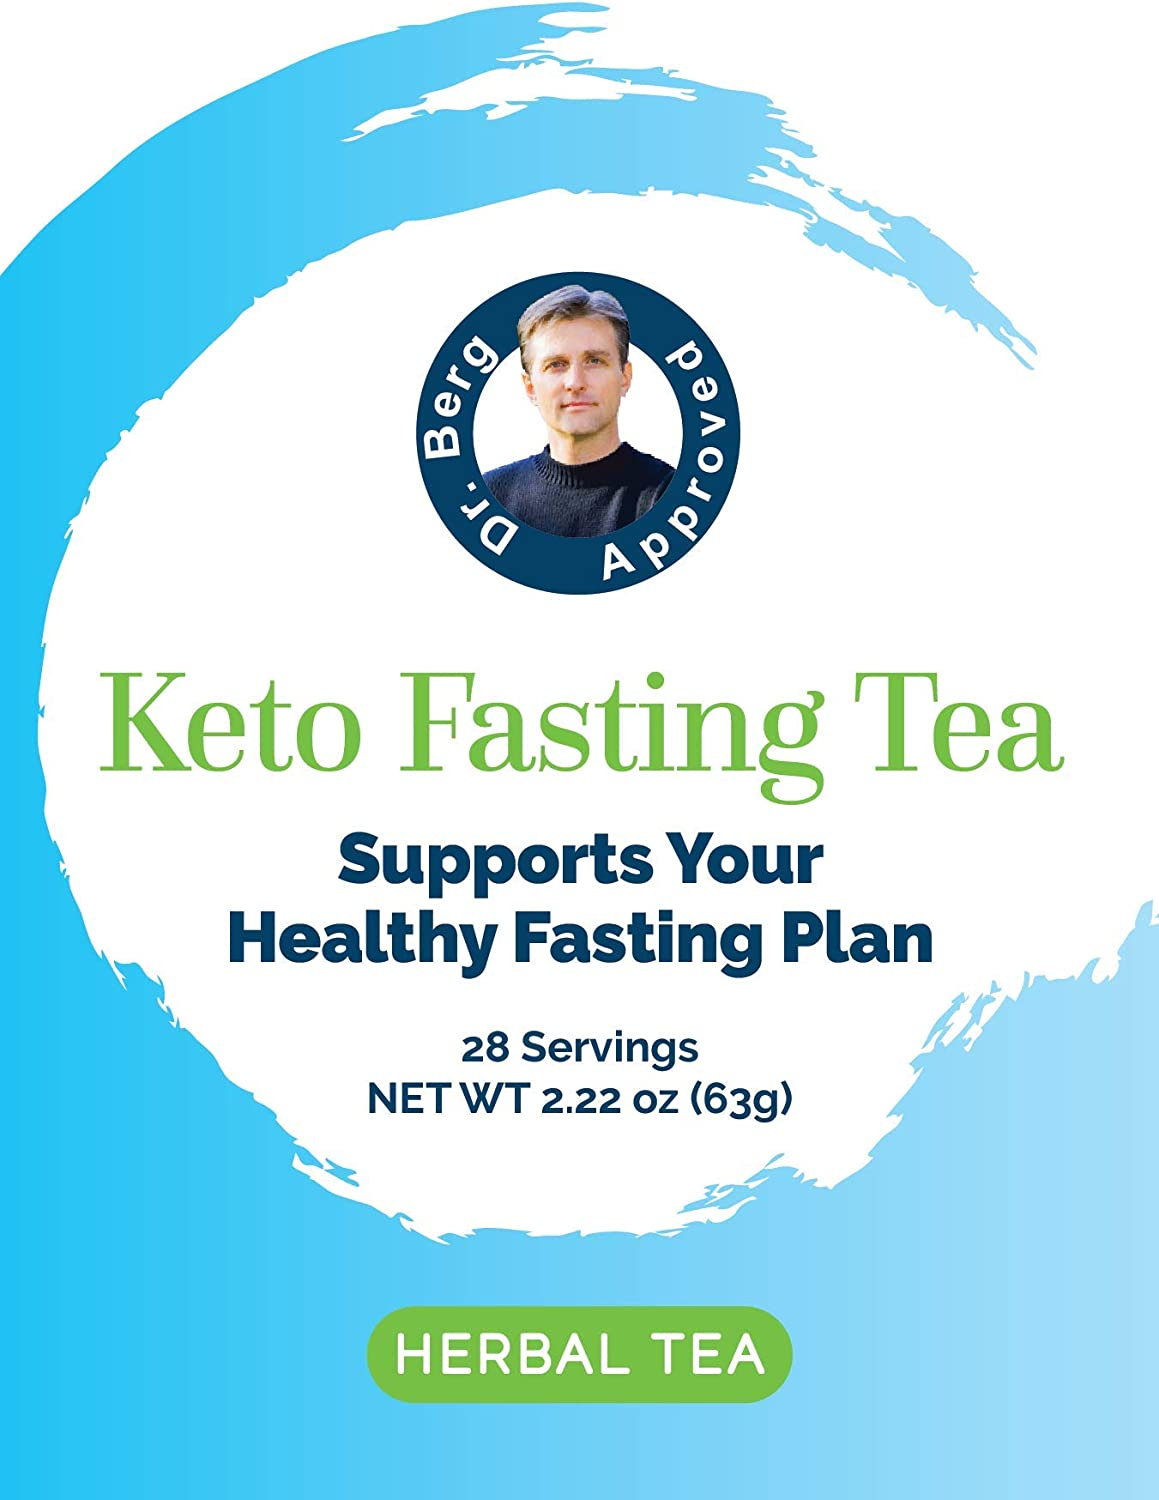 Dr. Berg s Keto Fasting Tea Unsweetened Caffeine-Free – an Appetite Suppressant Green Herbal Tea Drink to Help Reduce Hunger for Weight Loss – Dietary Supplement 6 Pack